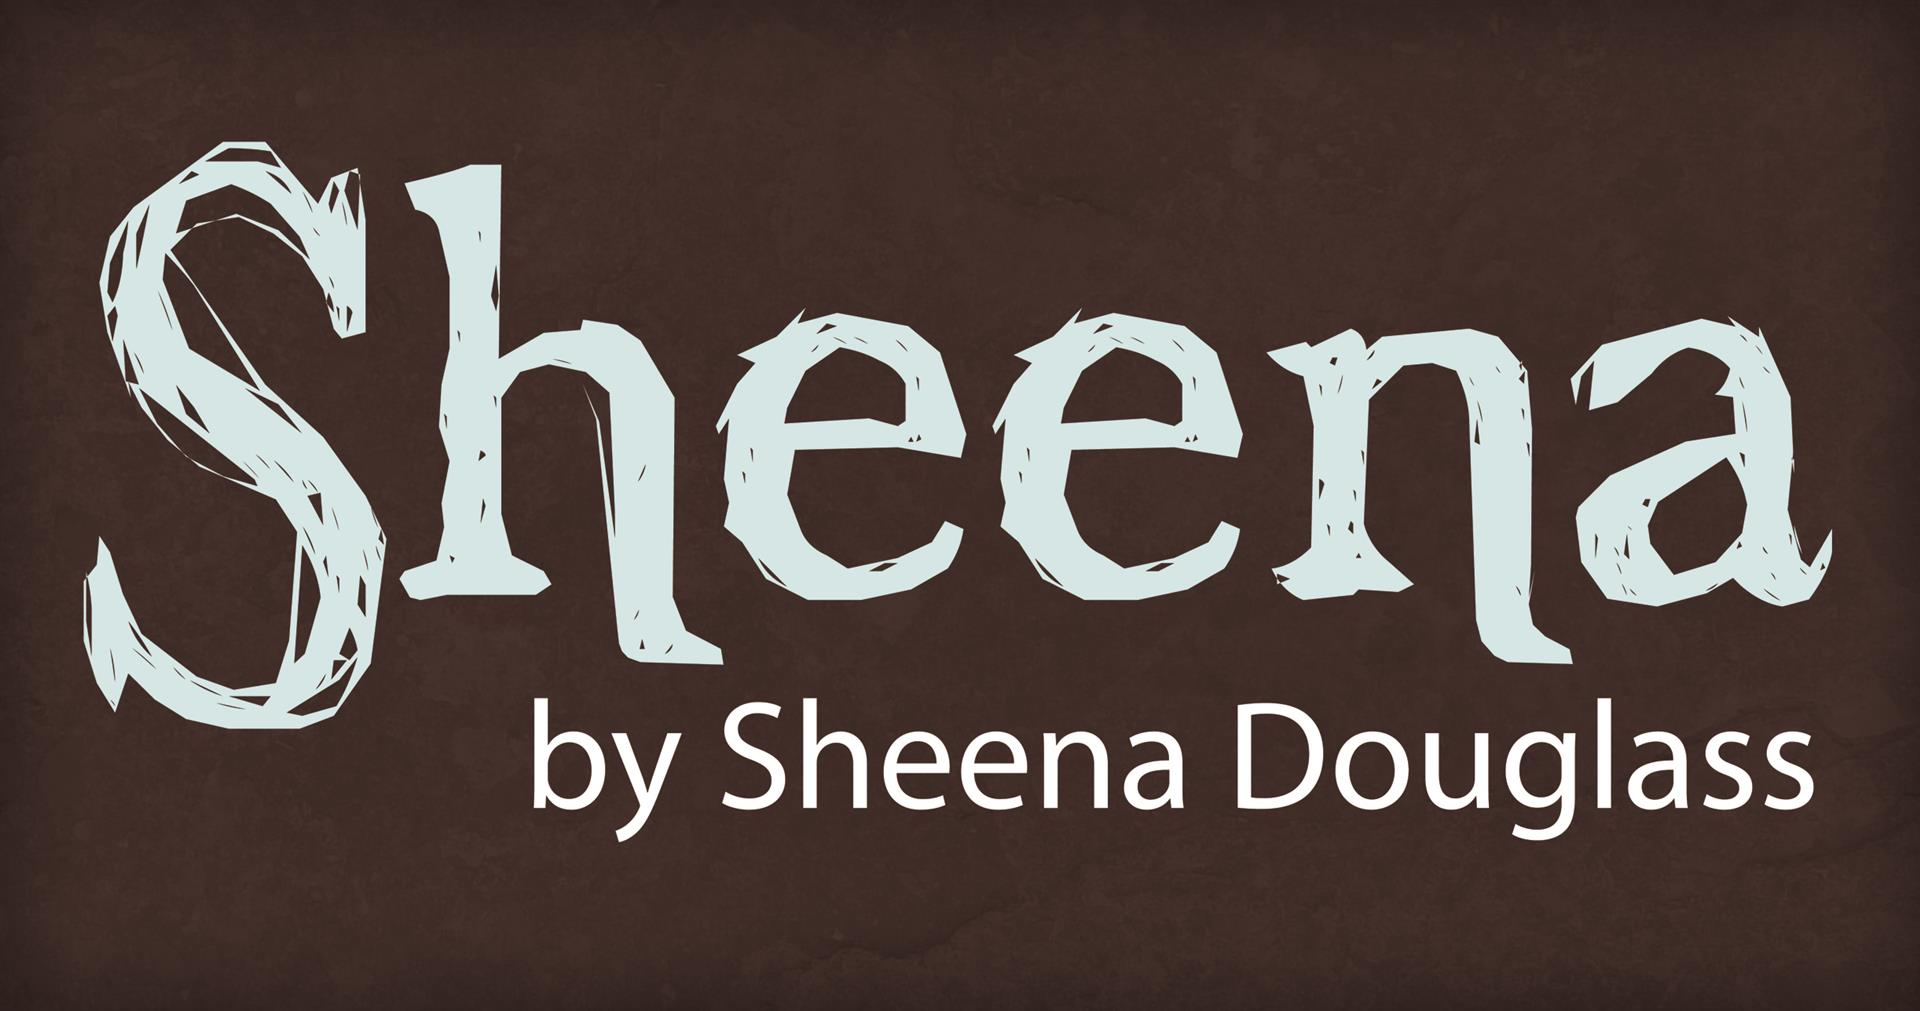 New from Sheena Douglass